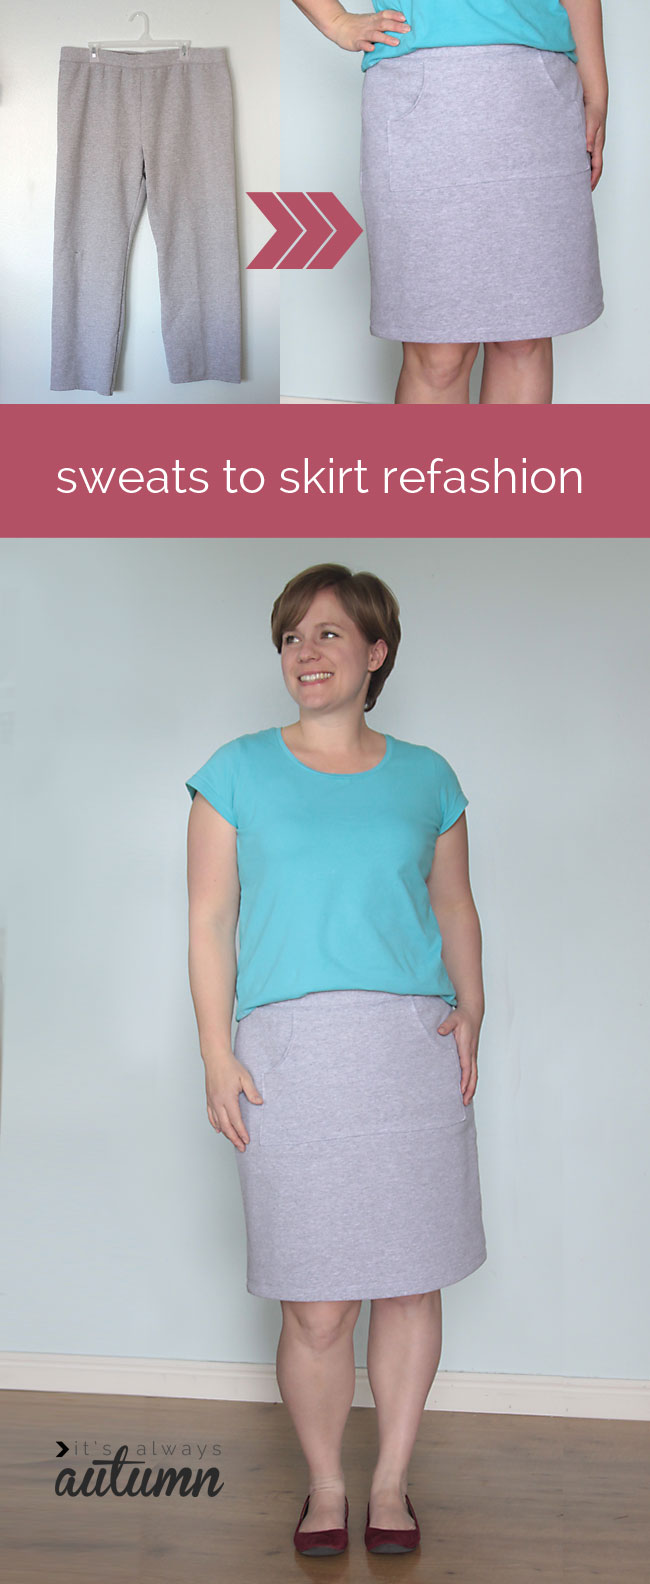 easy sewing tutorial! learn to refashion old sweats into a cute spring skirt.